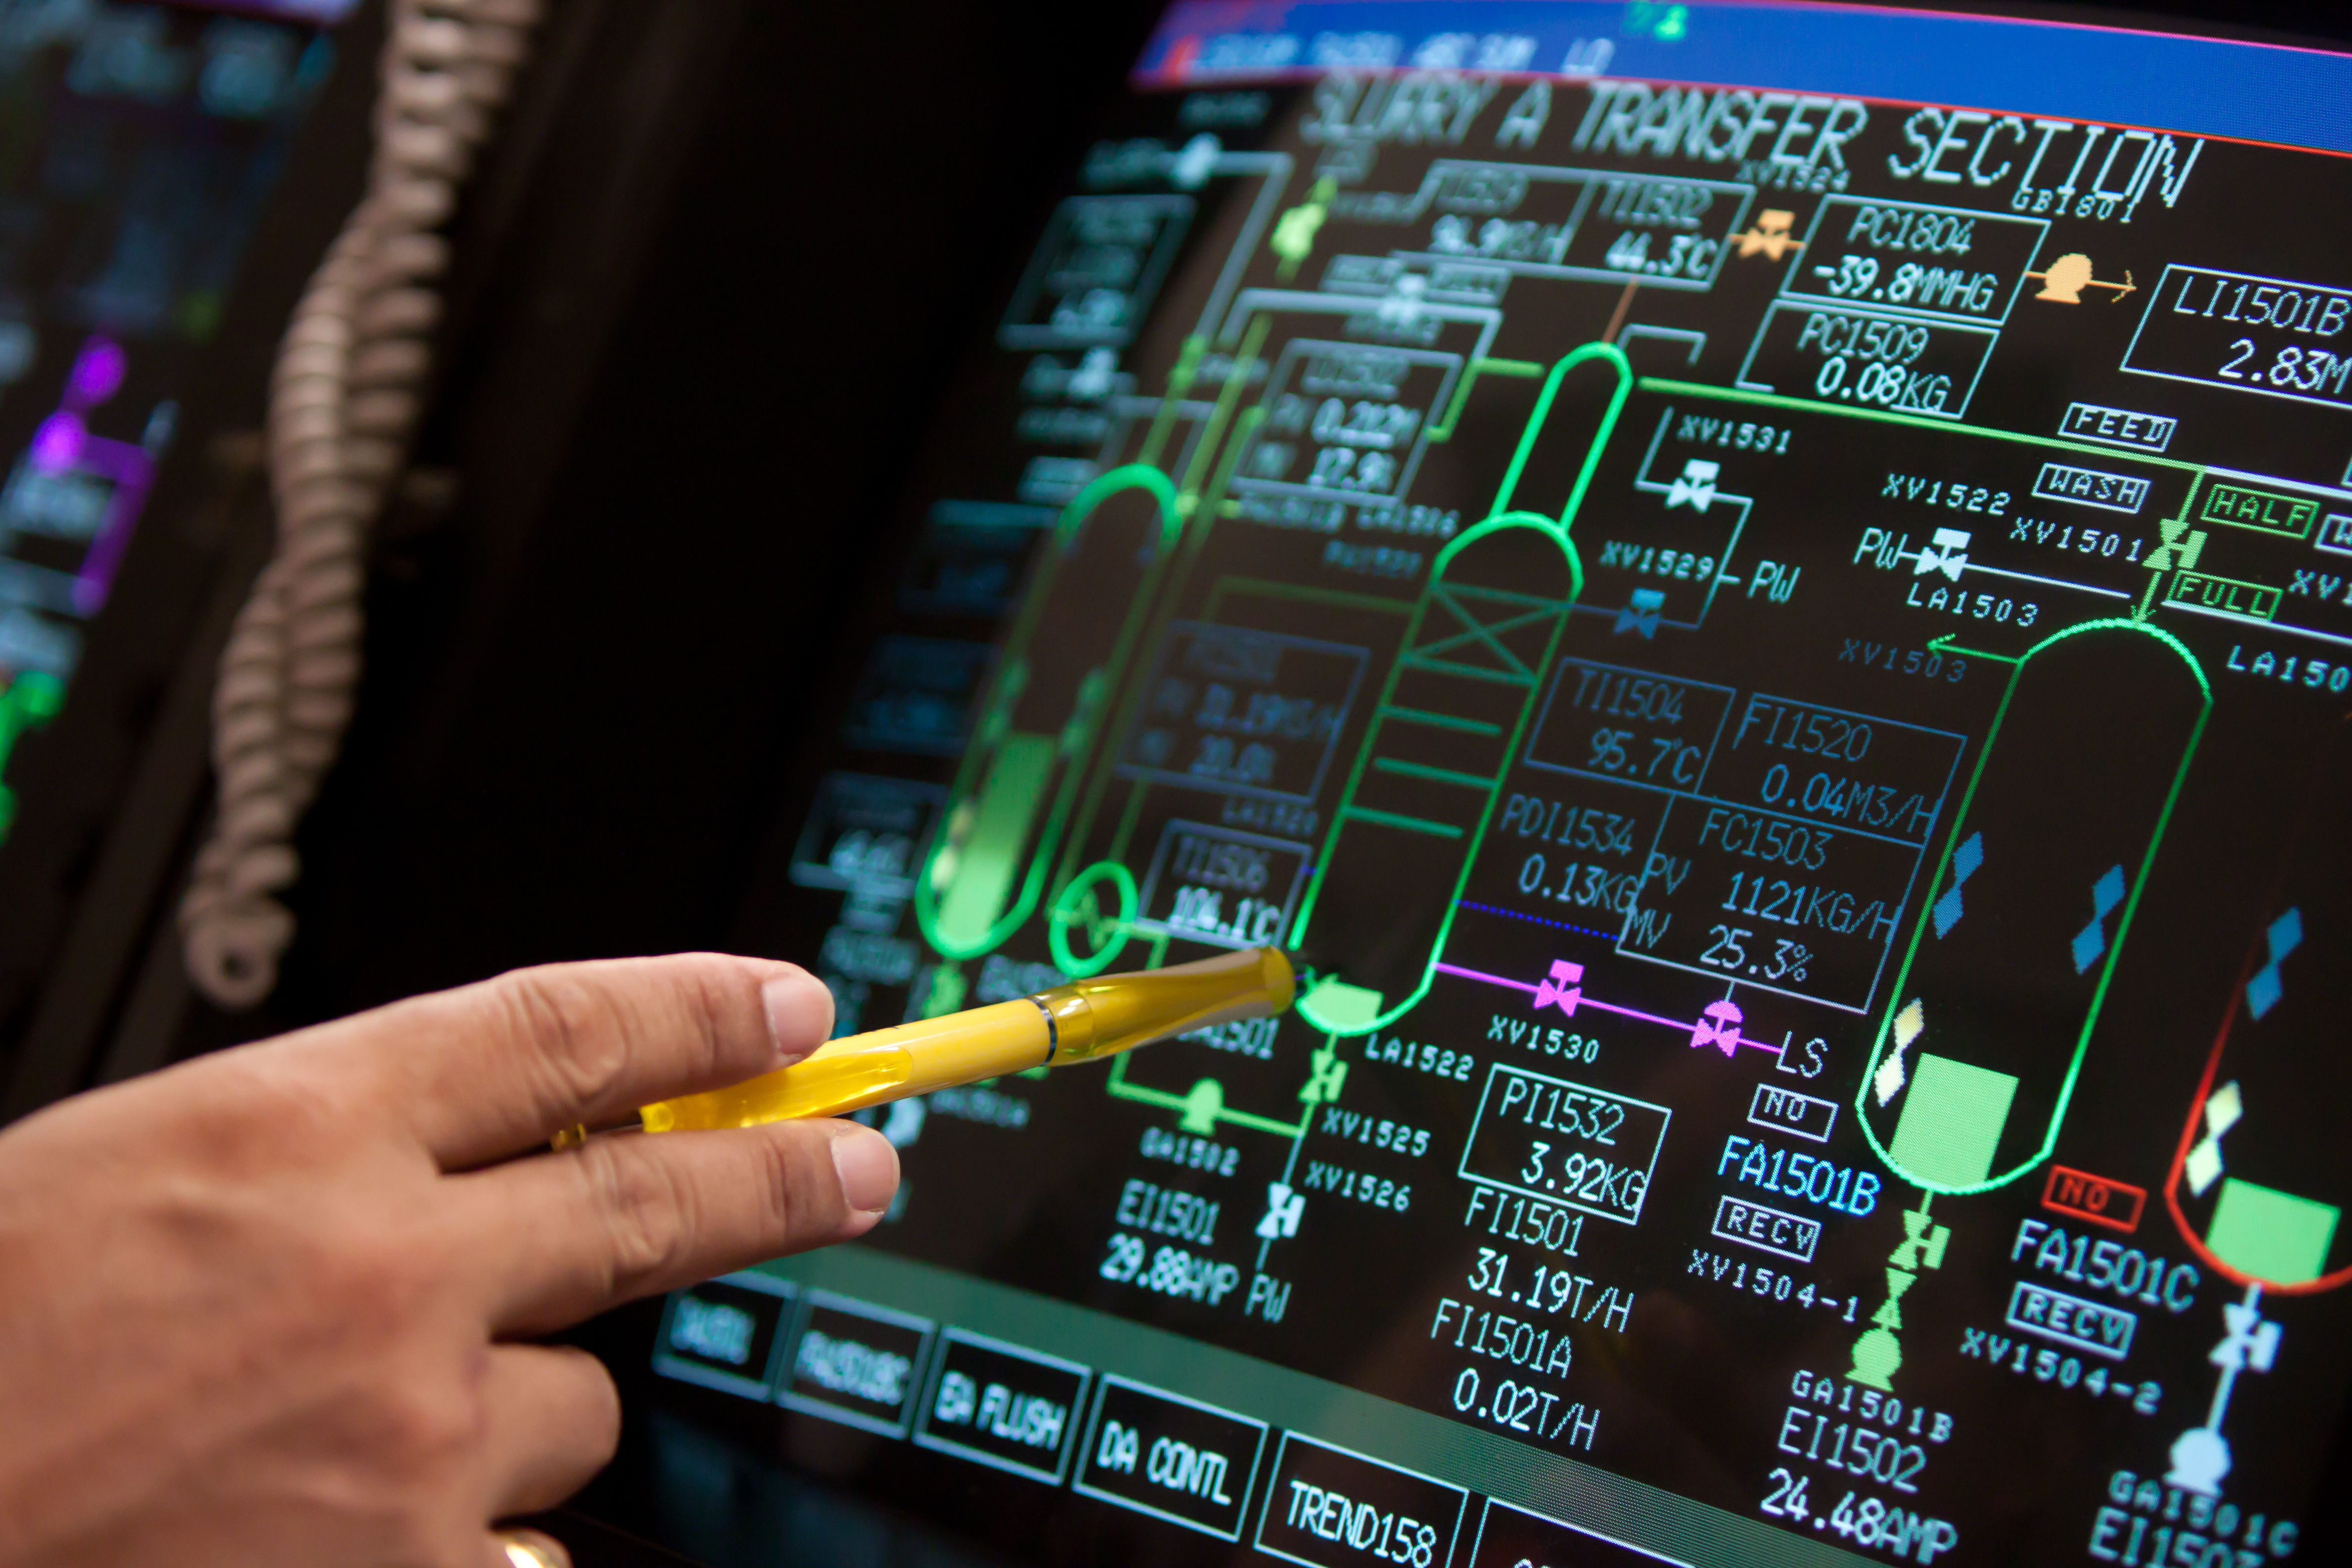 Risks facing industrial control systems reach all-time high